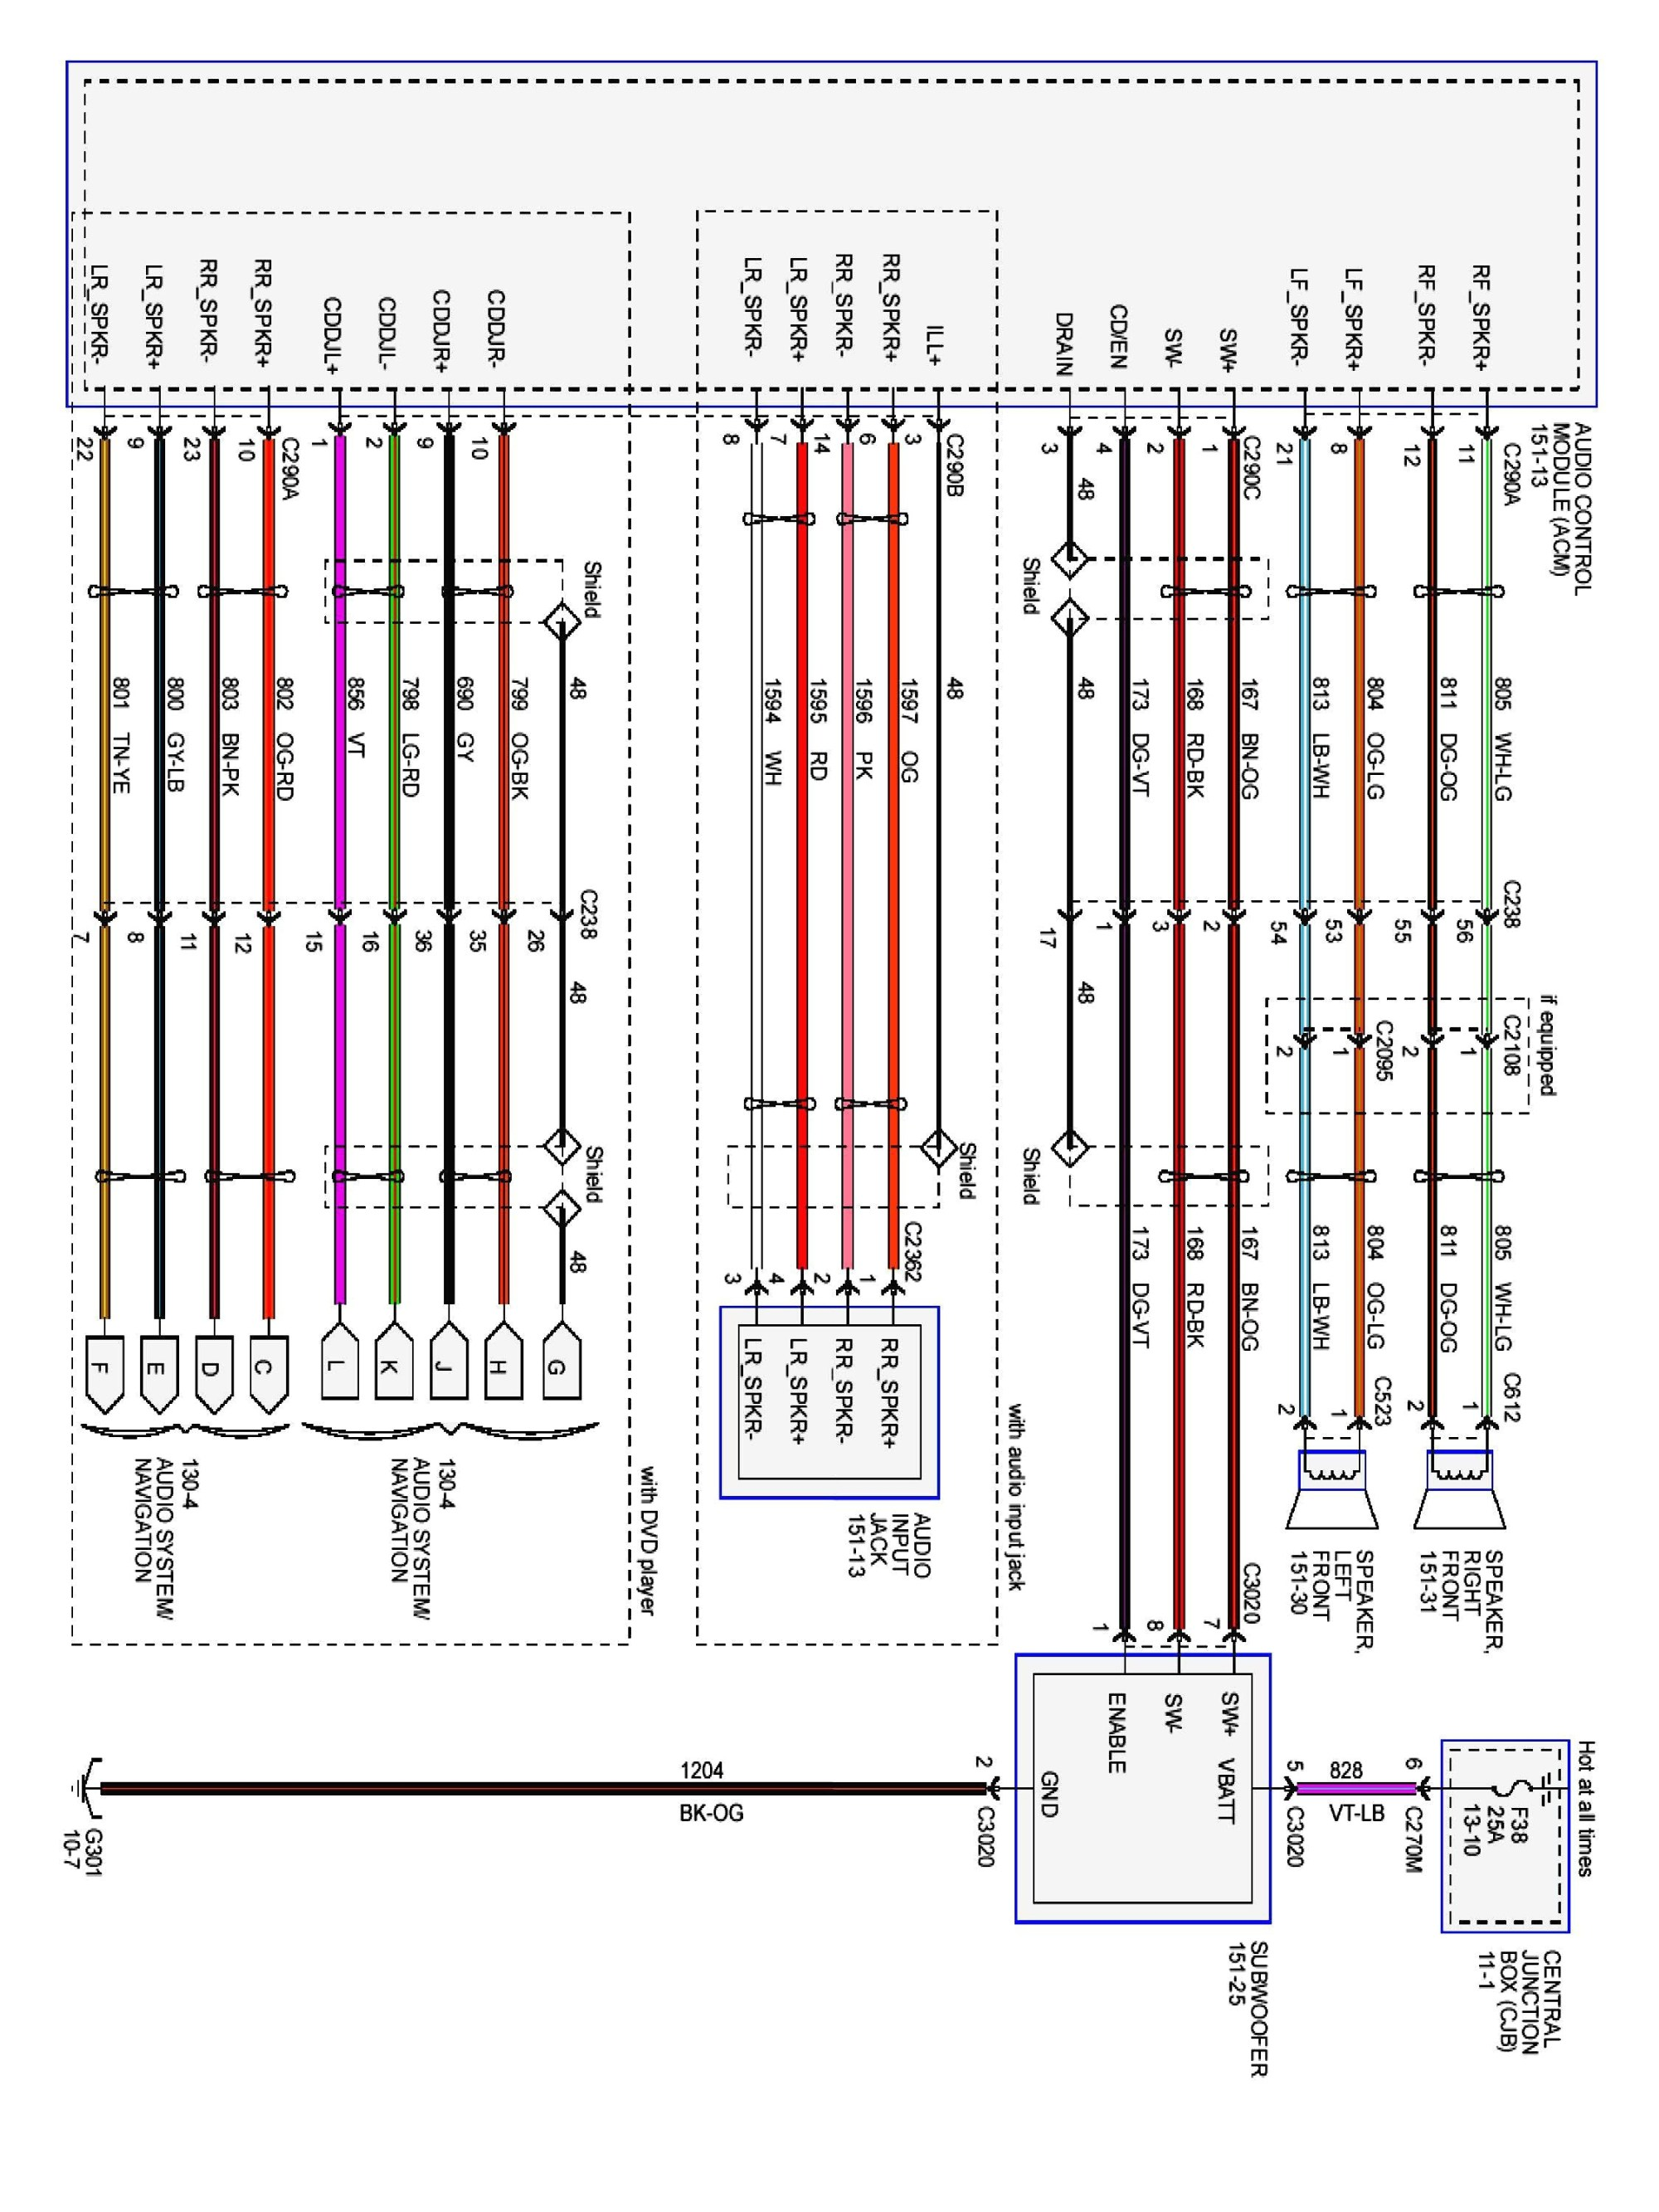 hight resolution of 2003 ford focus radio wiring diagram download wiring diagram sample 2013 f 150 7 pin